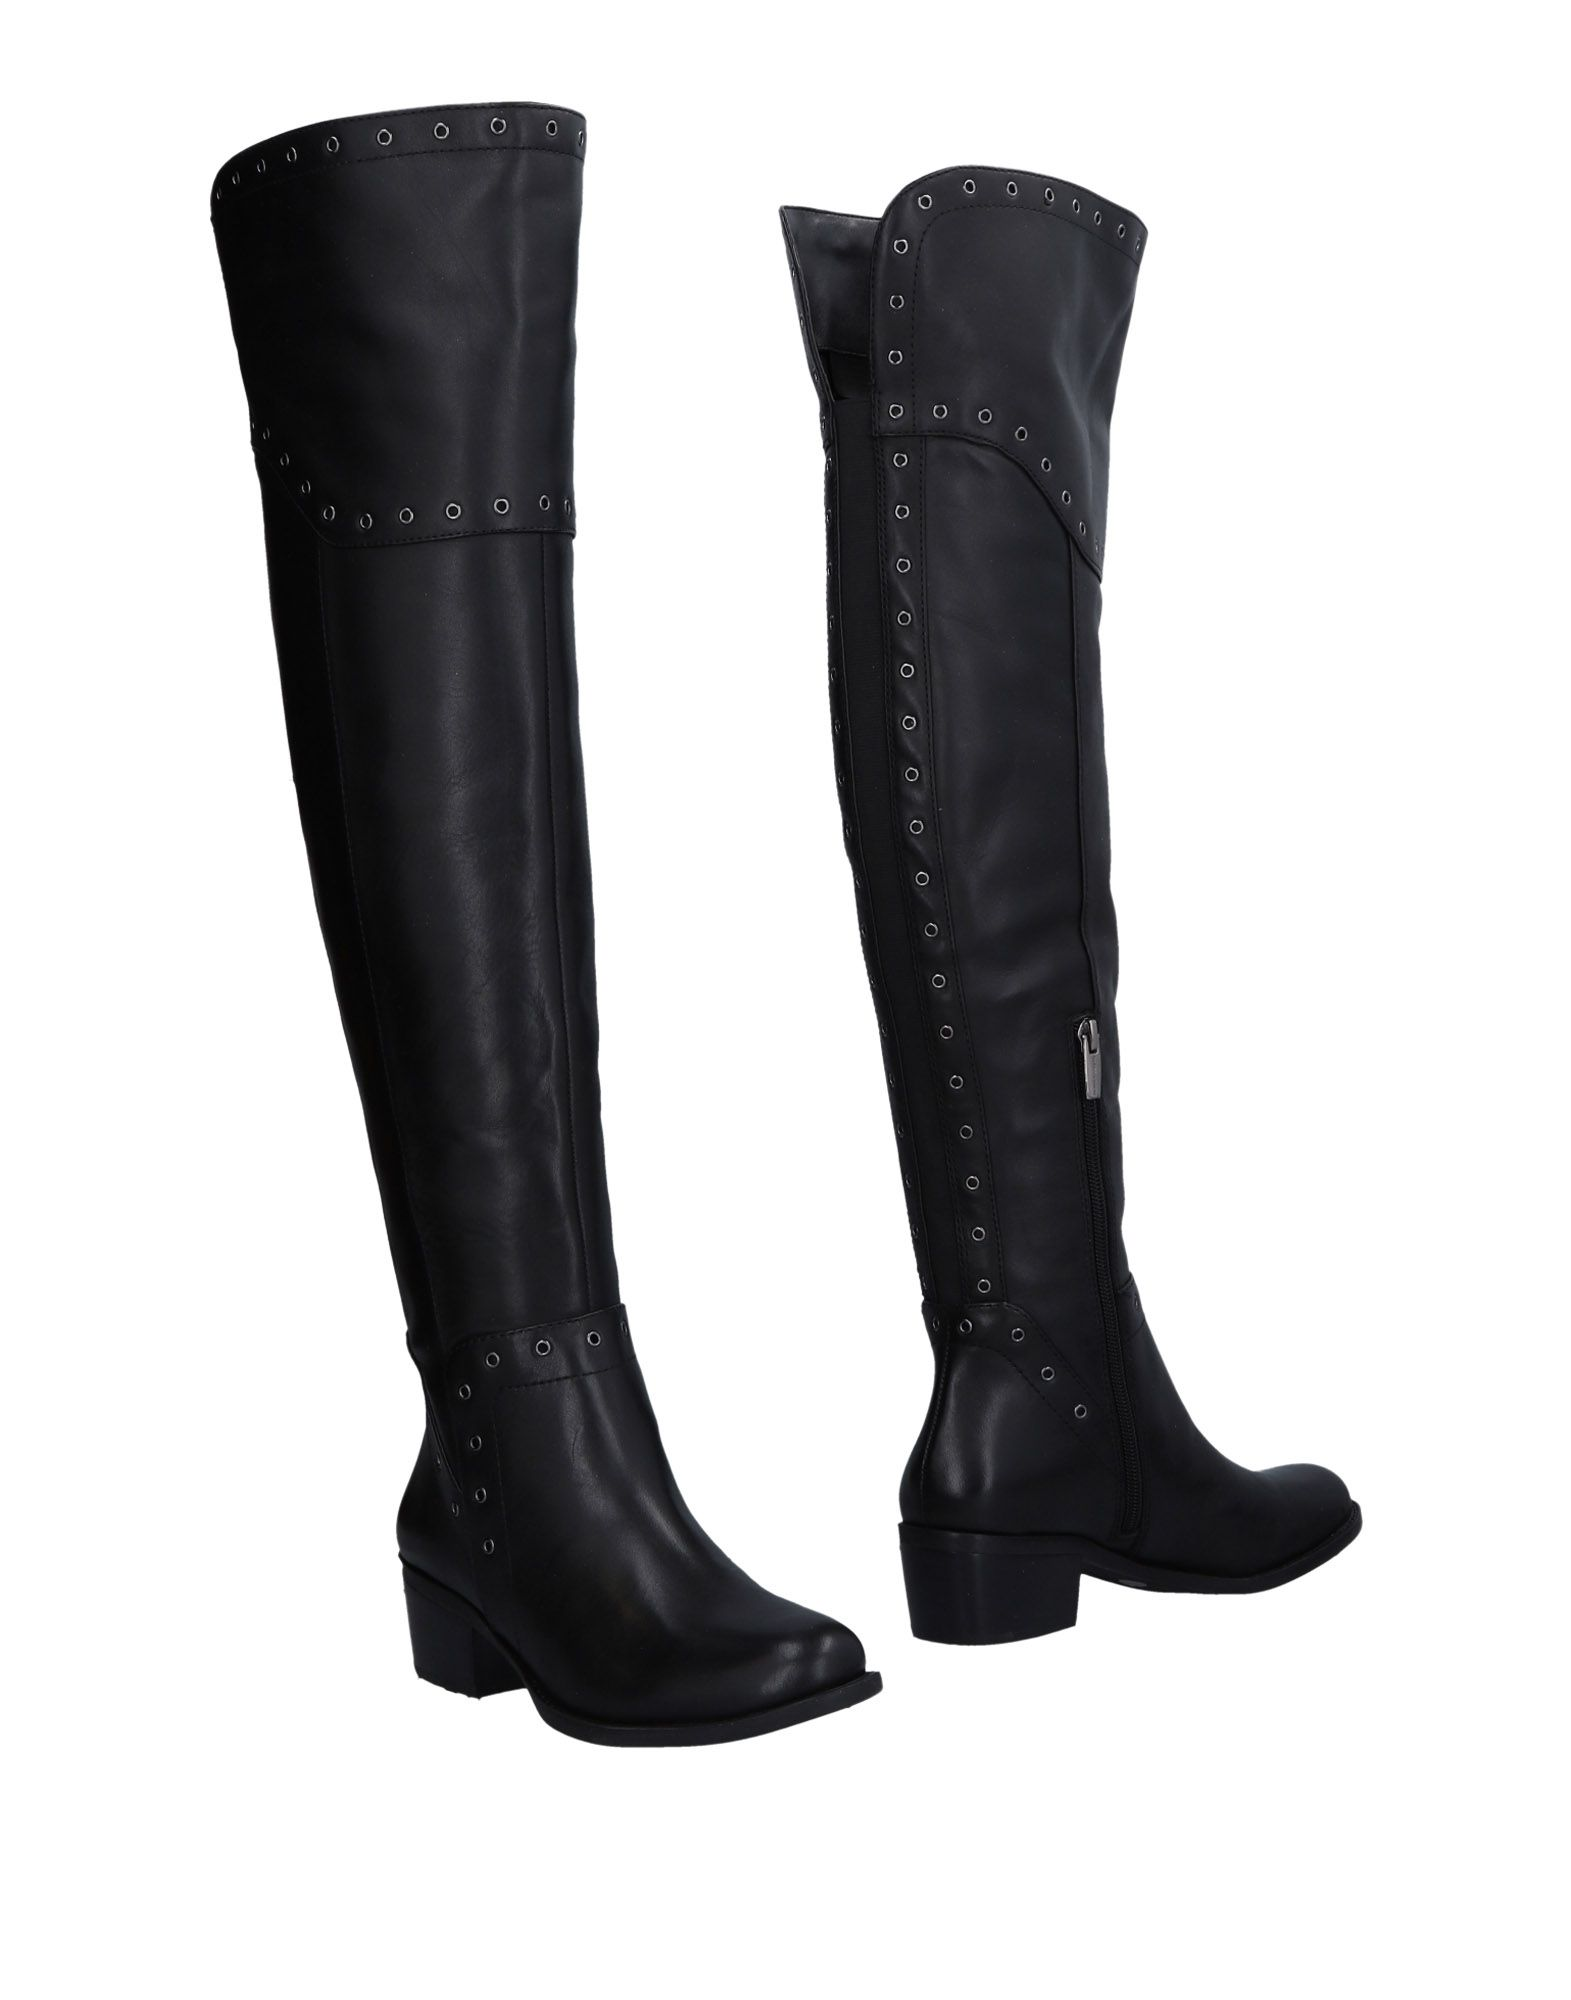 Vince Camuto Boots - Women Women Women Vince Camuto Boots online on  United Kingdom - 11479386GK 5ddc30